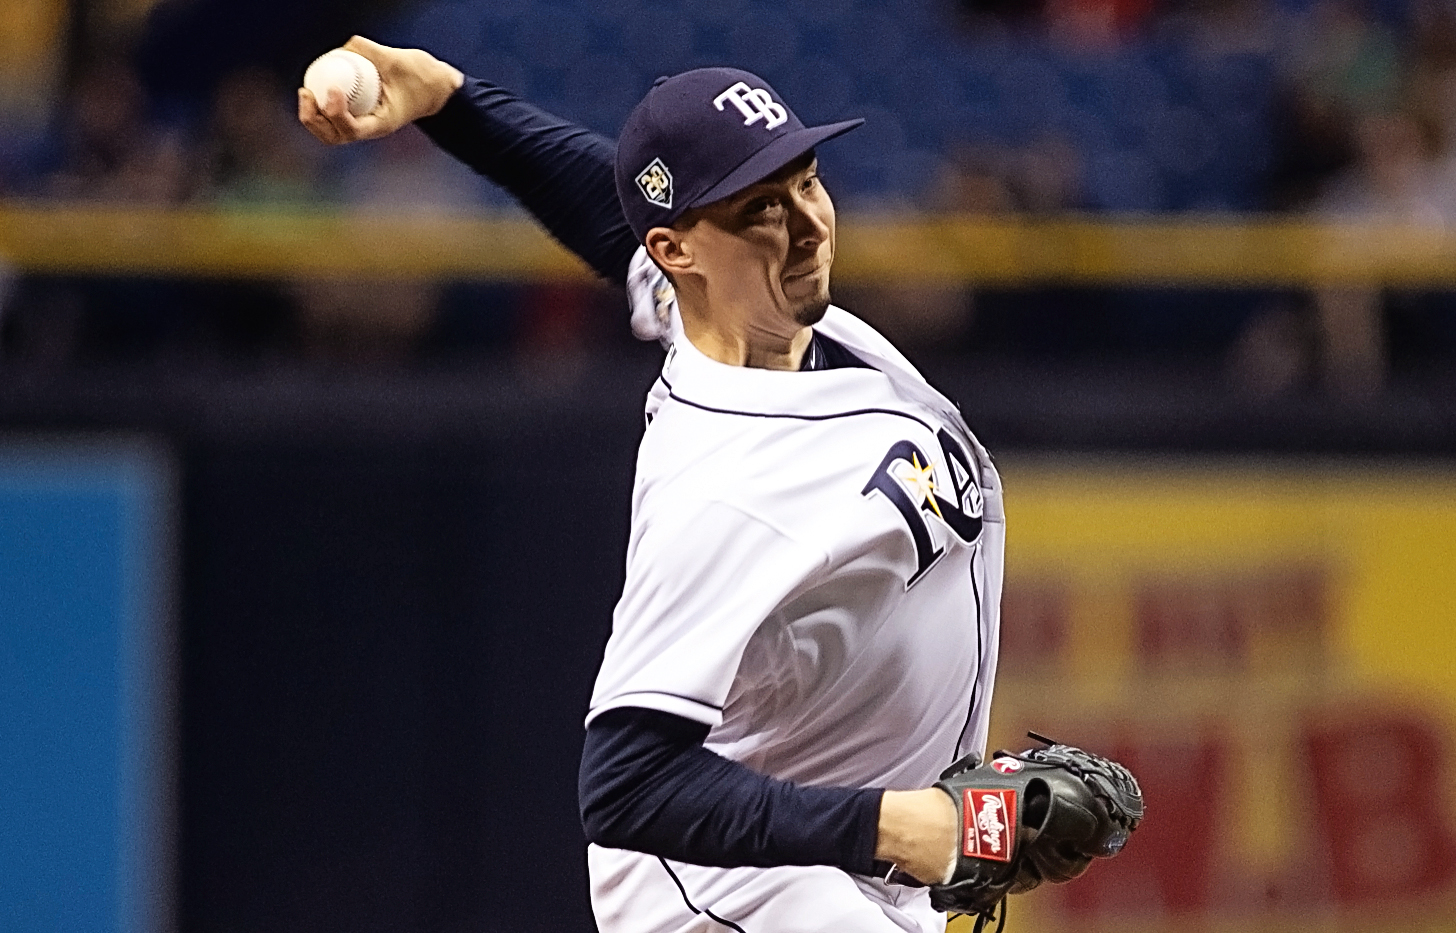 Snell pitched one of his finest games for Rays./CARMEN MANDATO